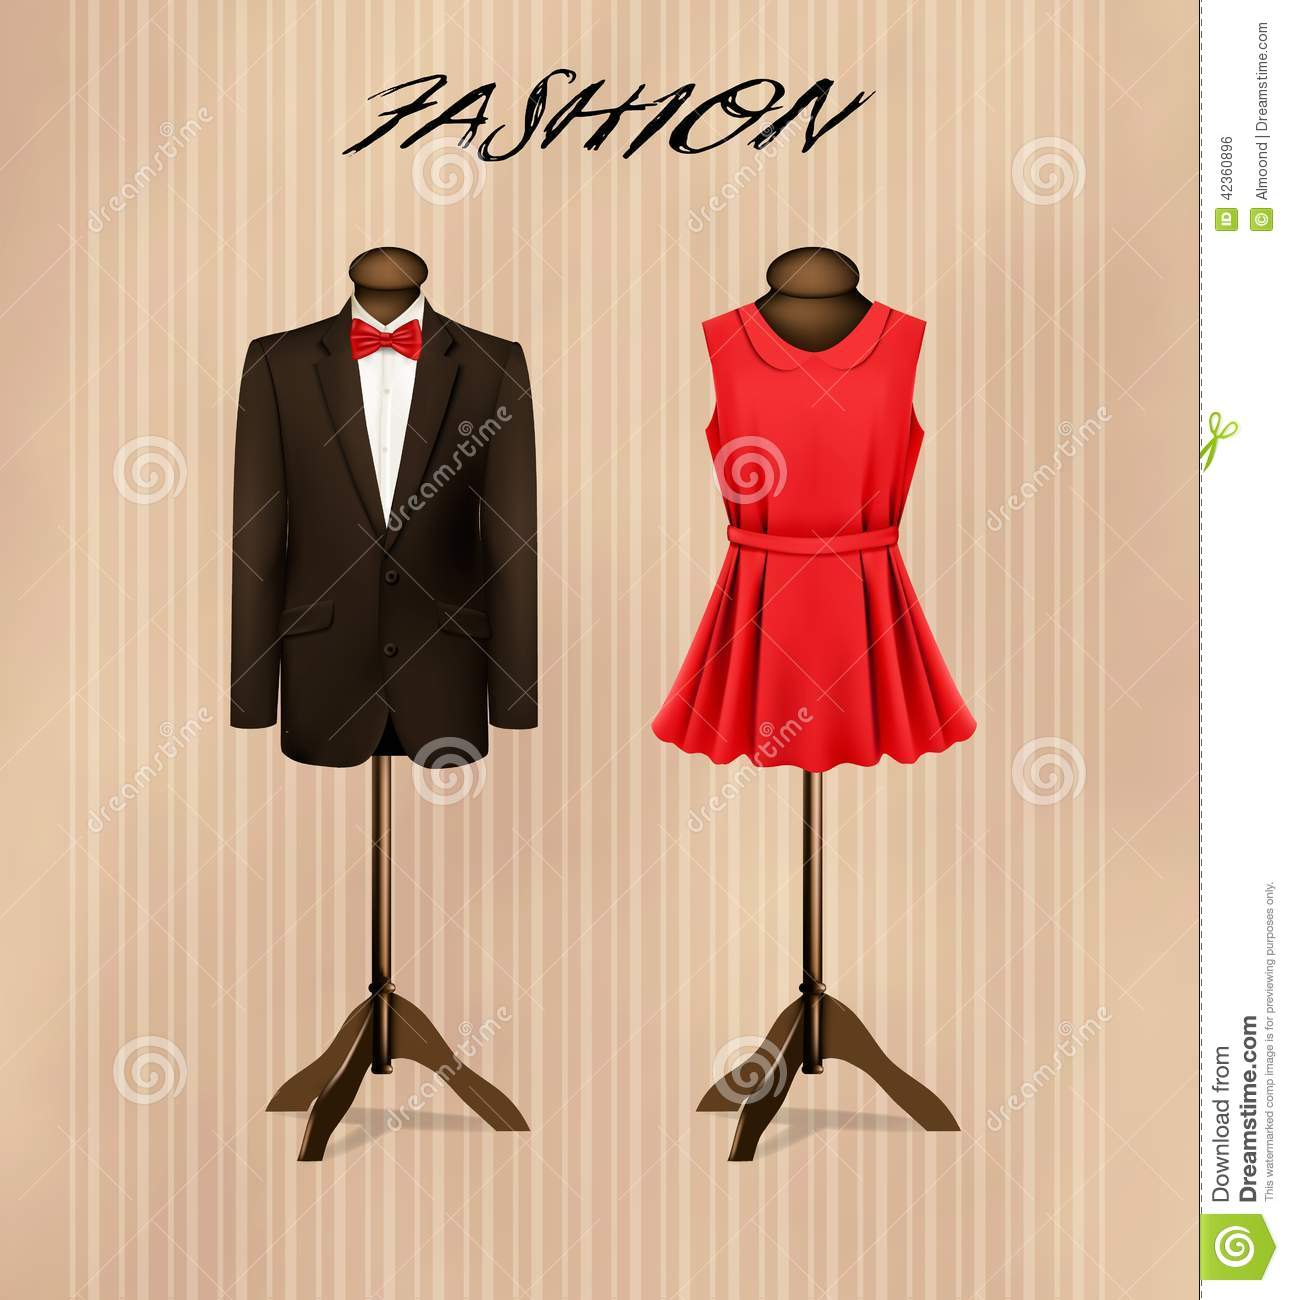 A Suit And A Retro Formal Dress On Mannequins. Stock Vector ...